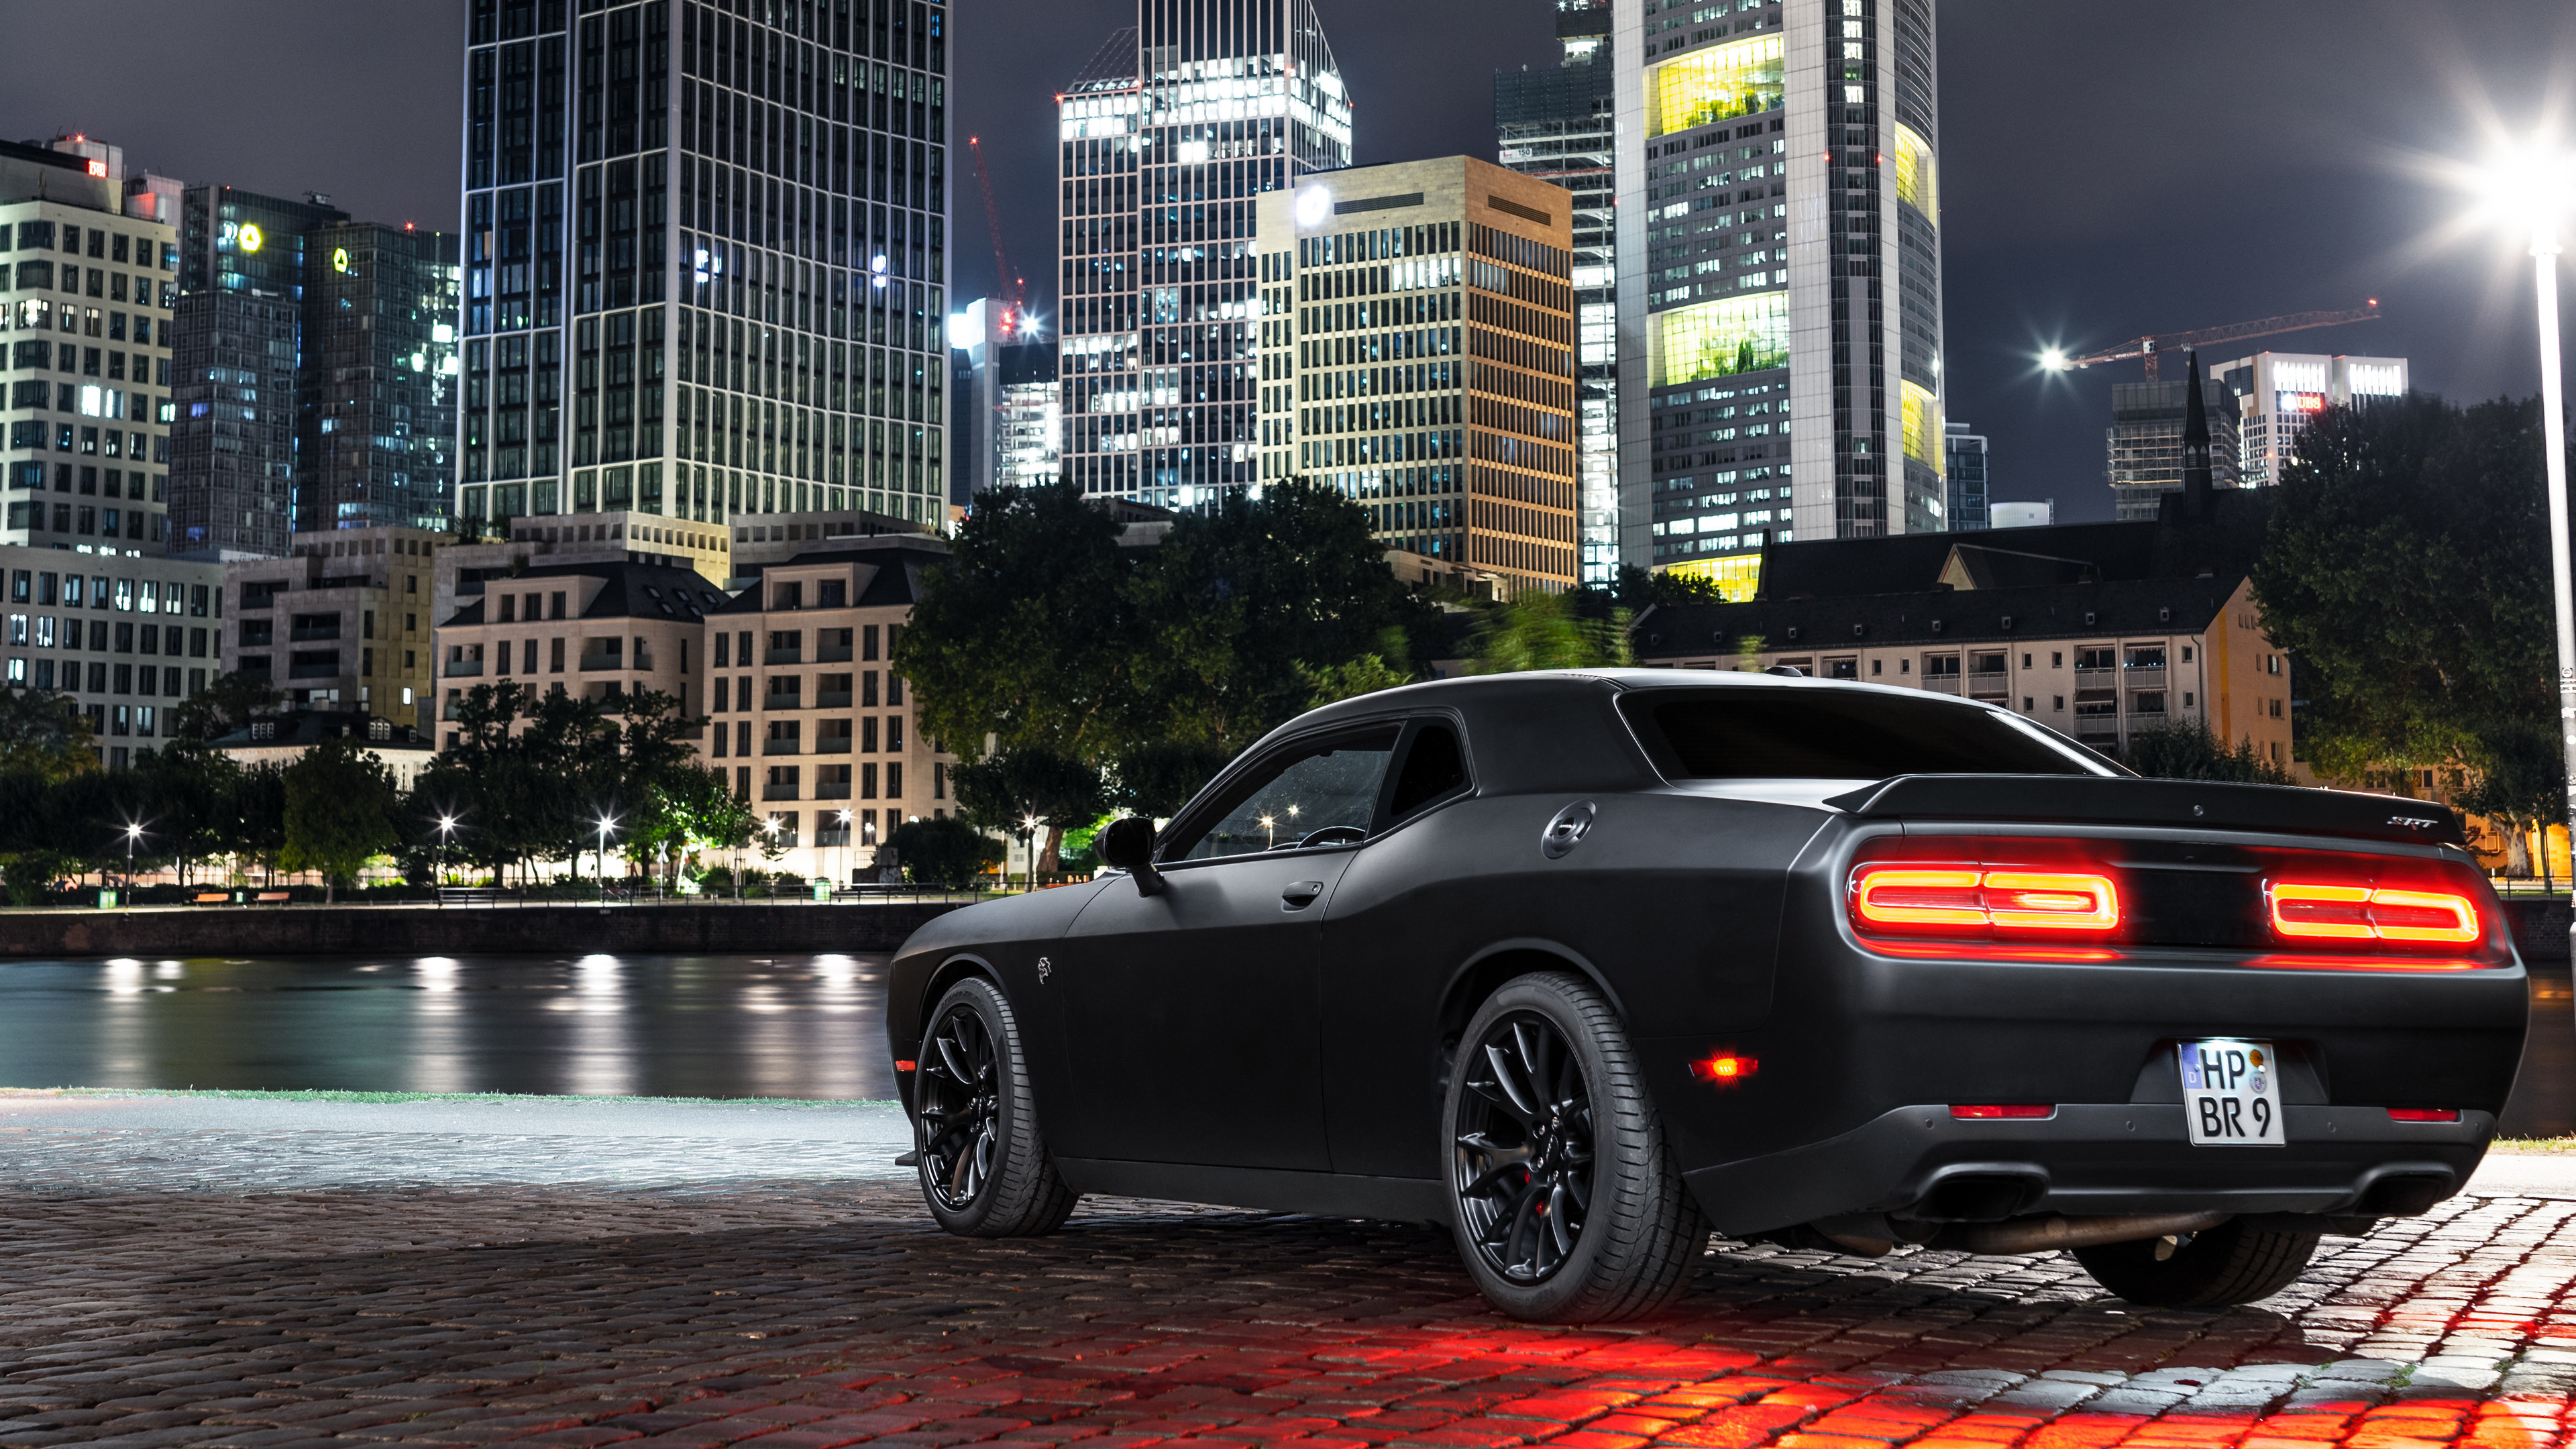 Wallpaper 4k Dodge Challenger Hellcat 4k 4k Wallpapers 5k